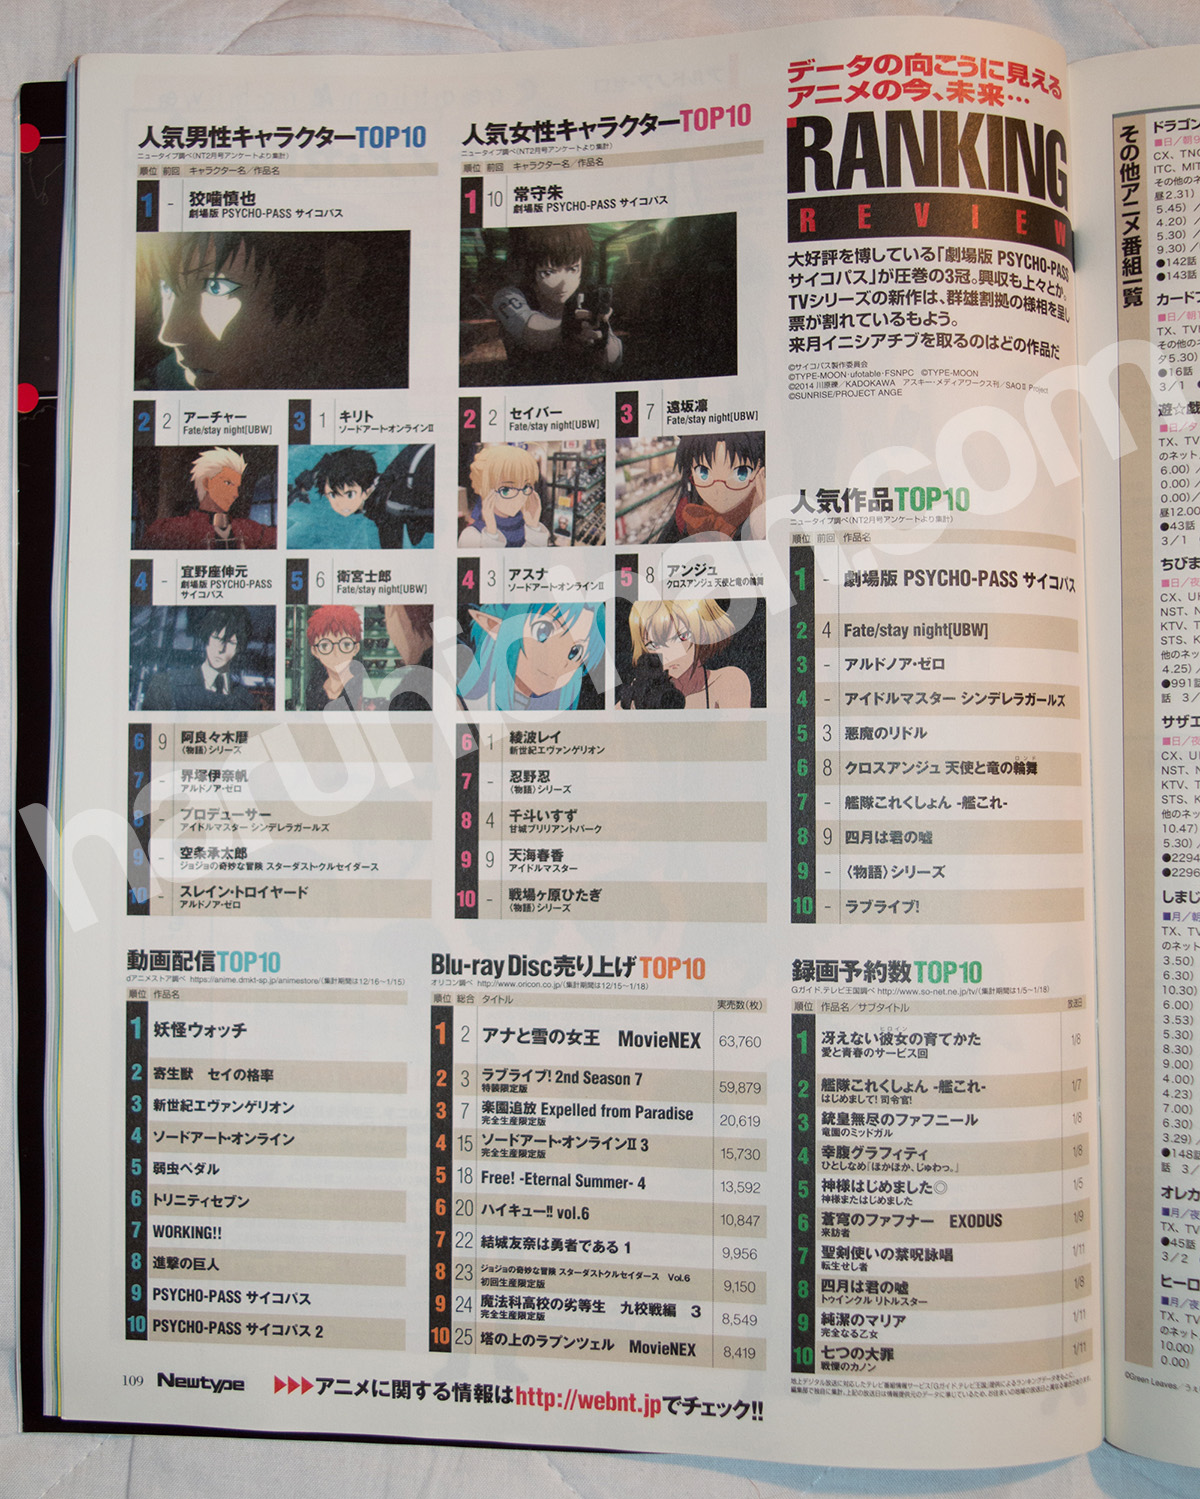 NewType-March-2015-Anime-Popularity-Ranking-Haruhichan.com-newtype-march-2015 anime rankings